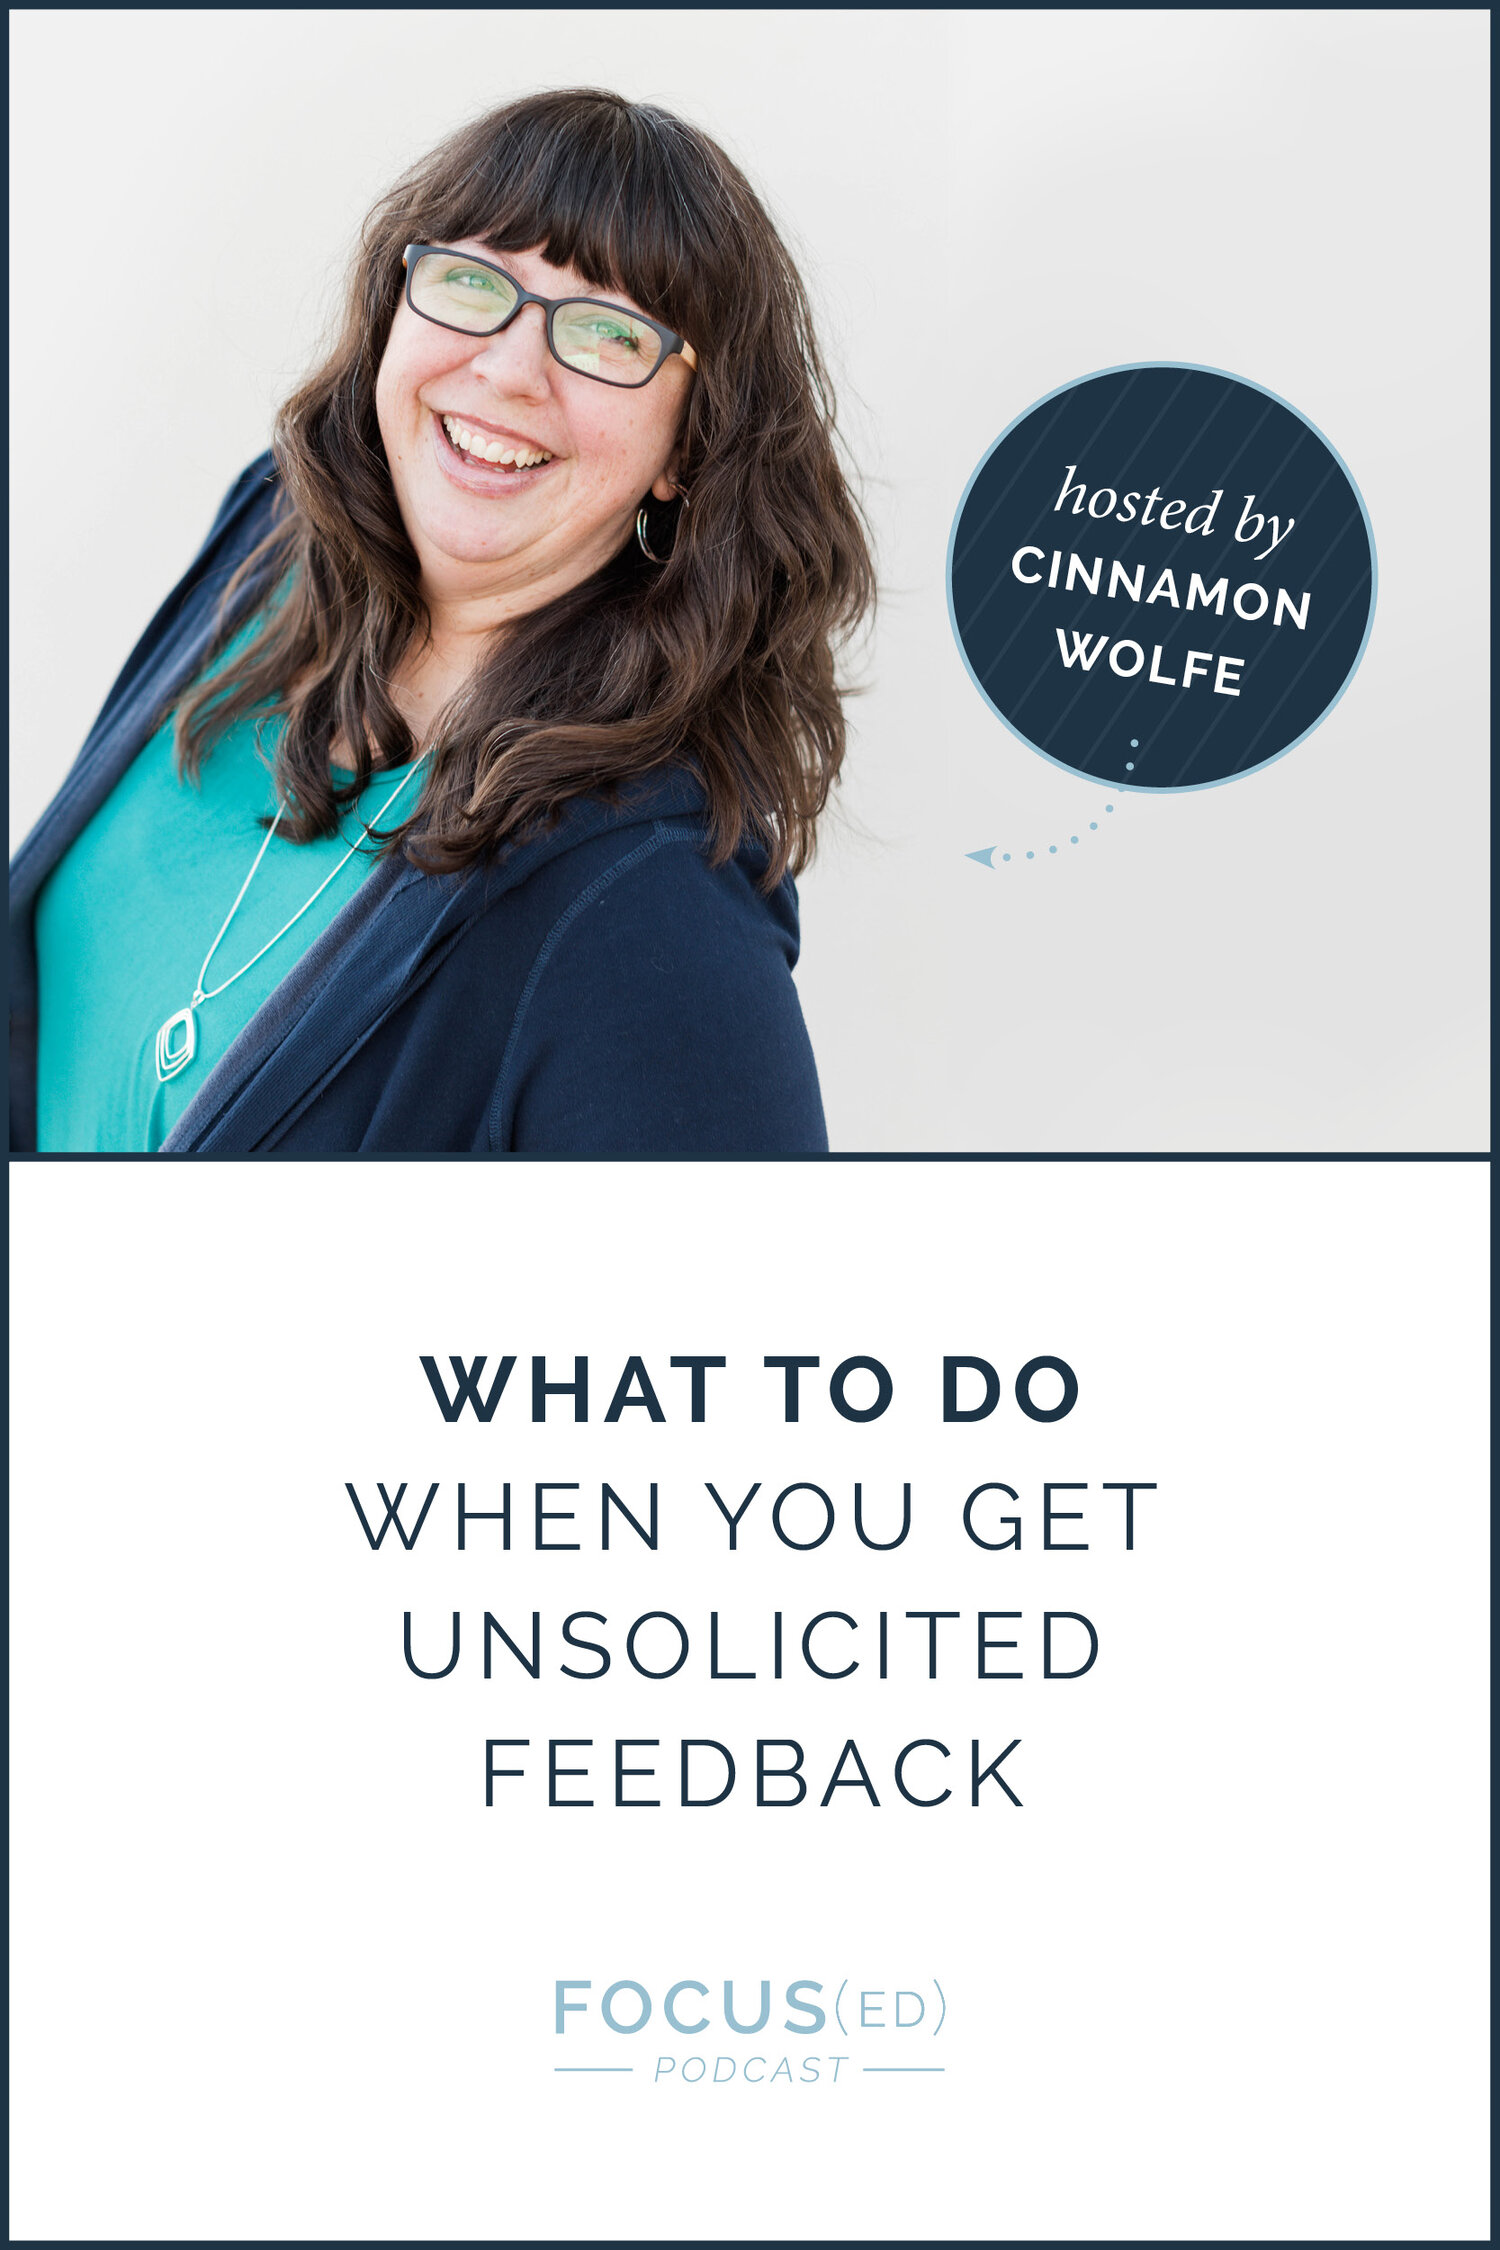 Focused Podcast with Cinnamon Wolfe: What to do when you get unsolicited feedback